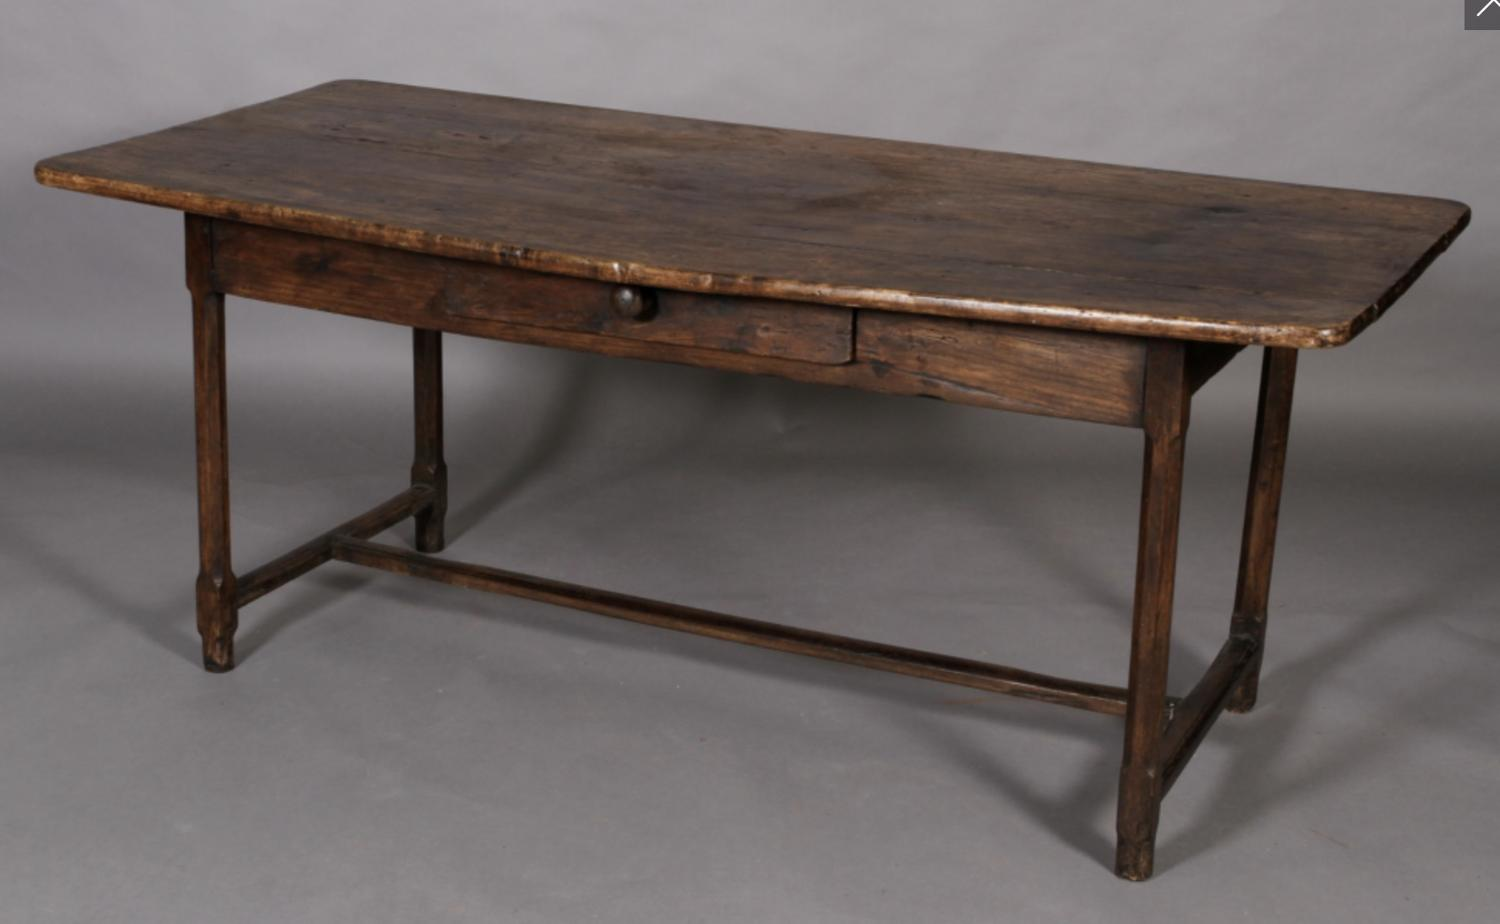 Antique French fruitwood farmhouse table